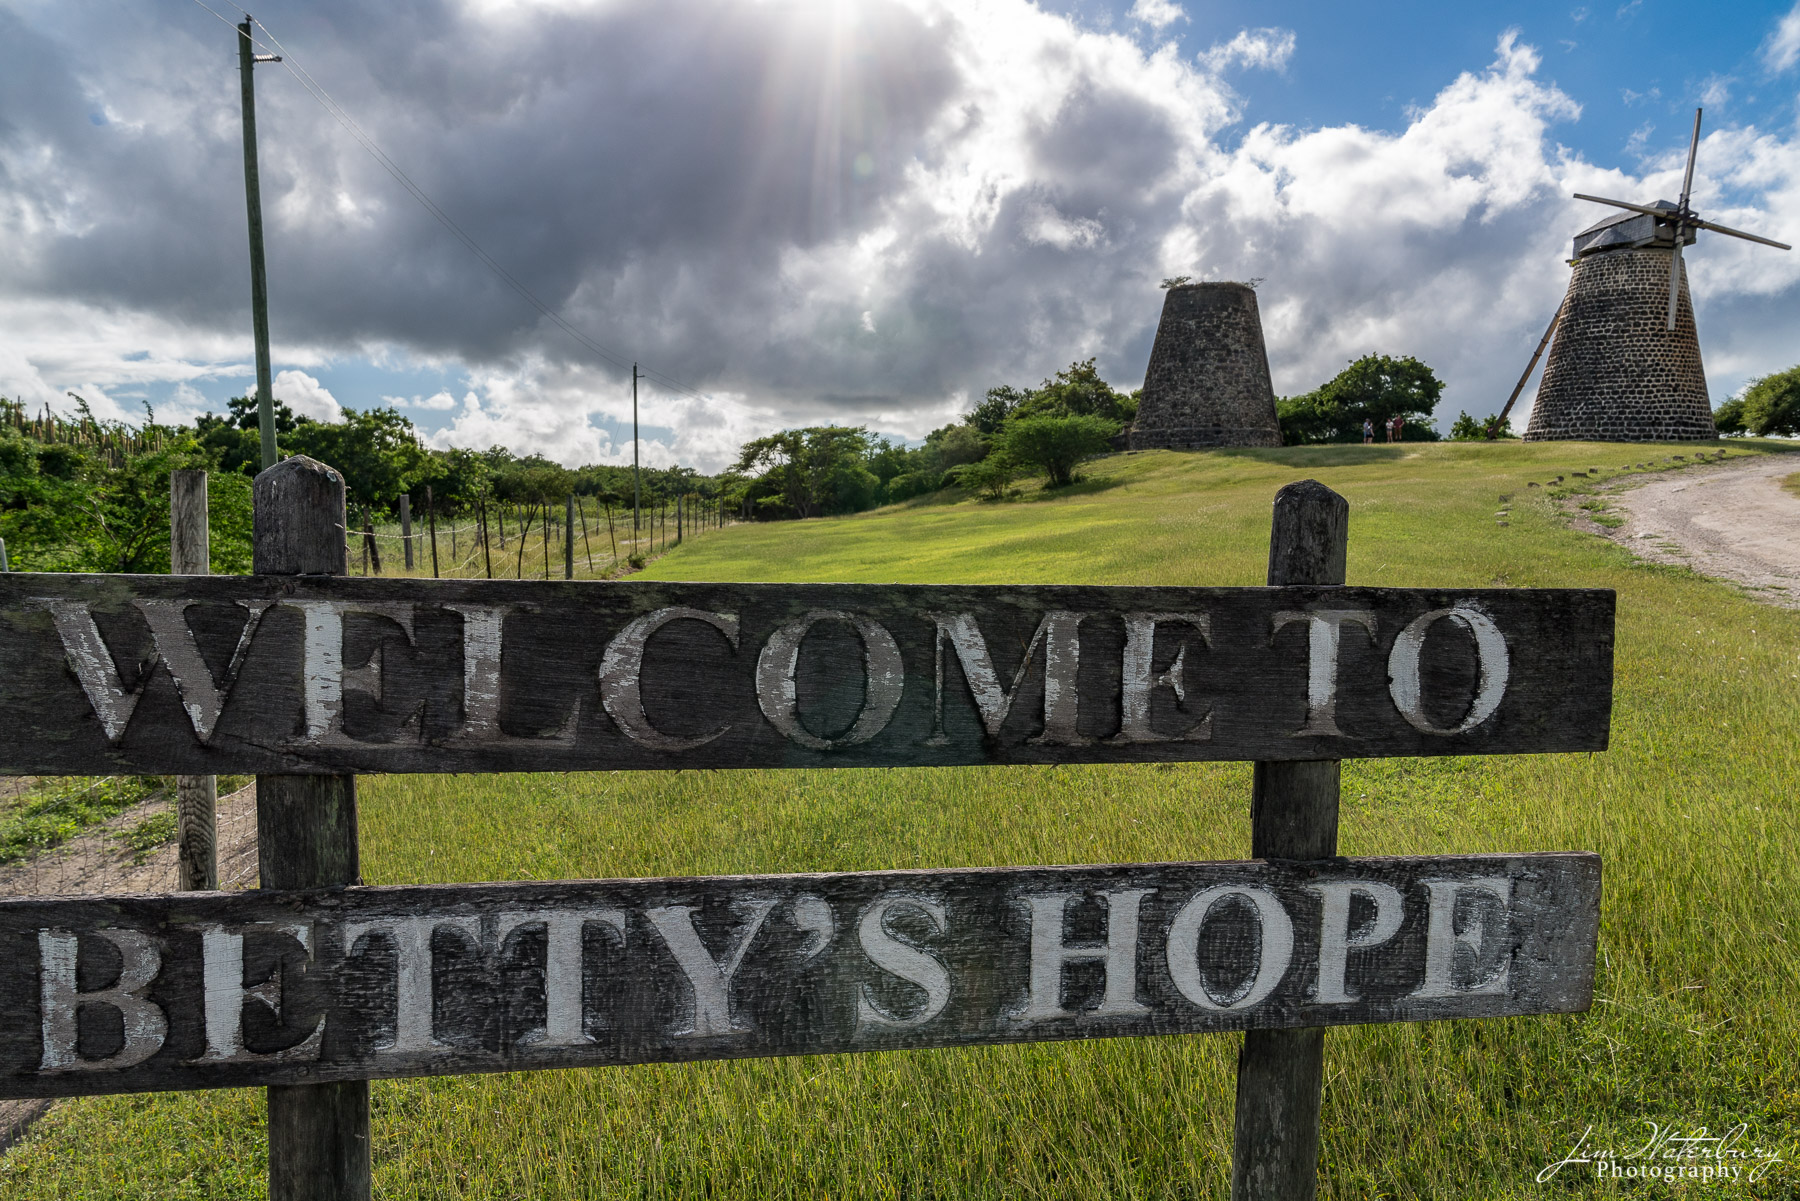 View of the restored sugar mill at Betty's Hope on Antigua.  Betty's Hope was one of the earliest sugar plantations on the...